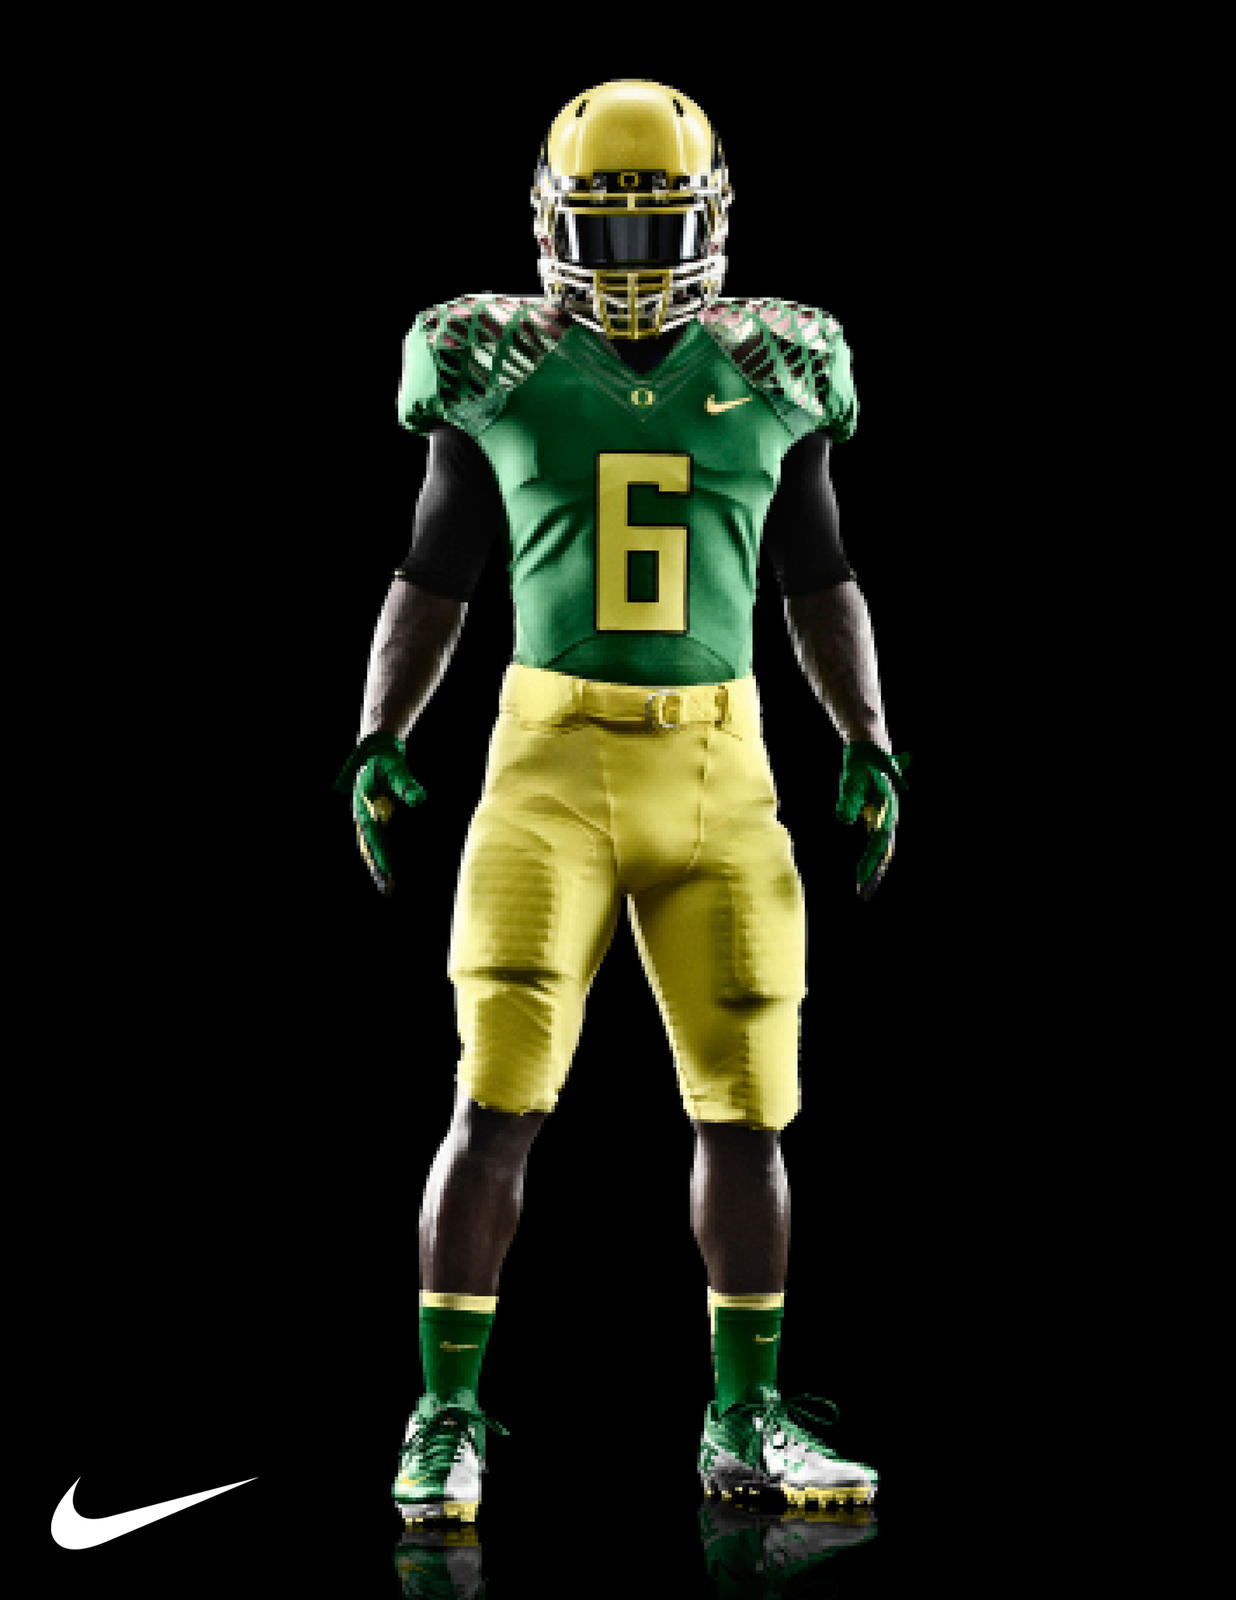 Oregon Ducks Jersey Clip Art.